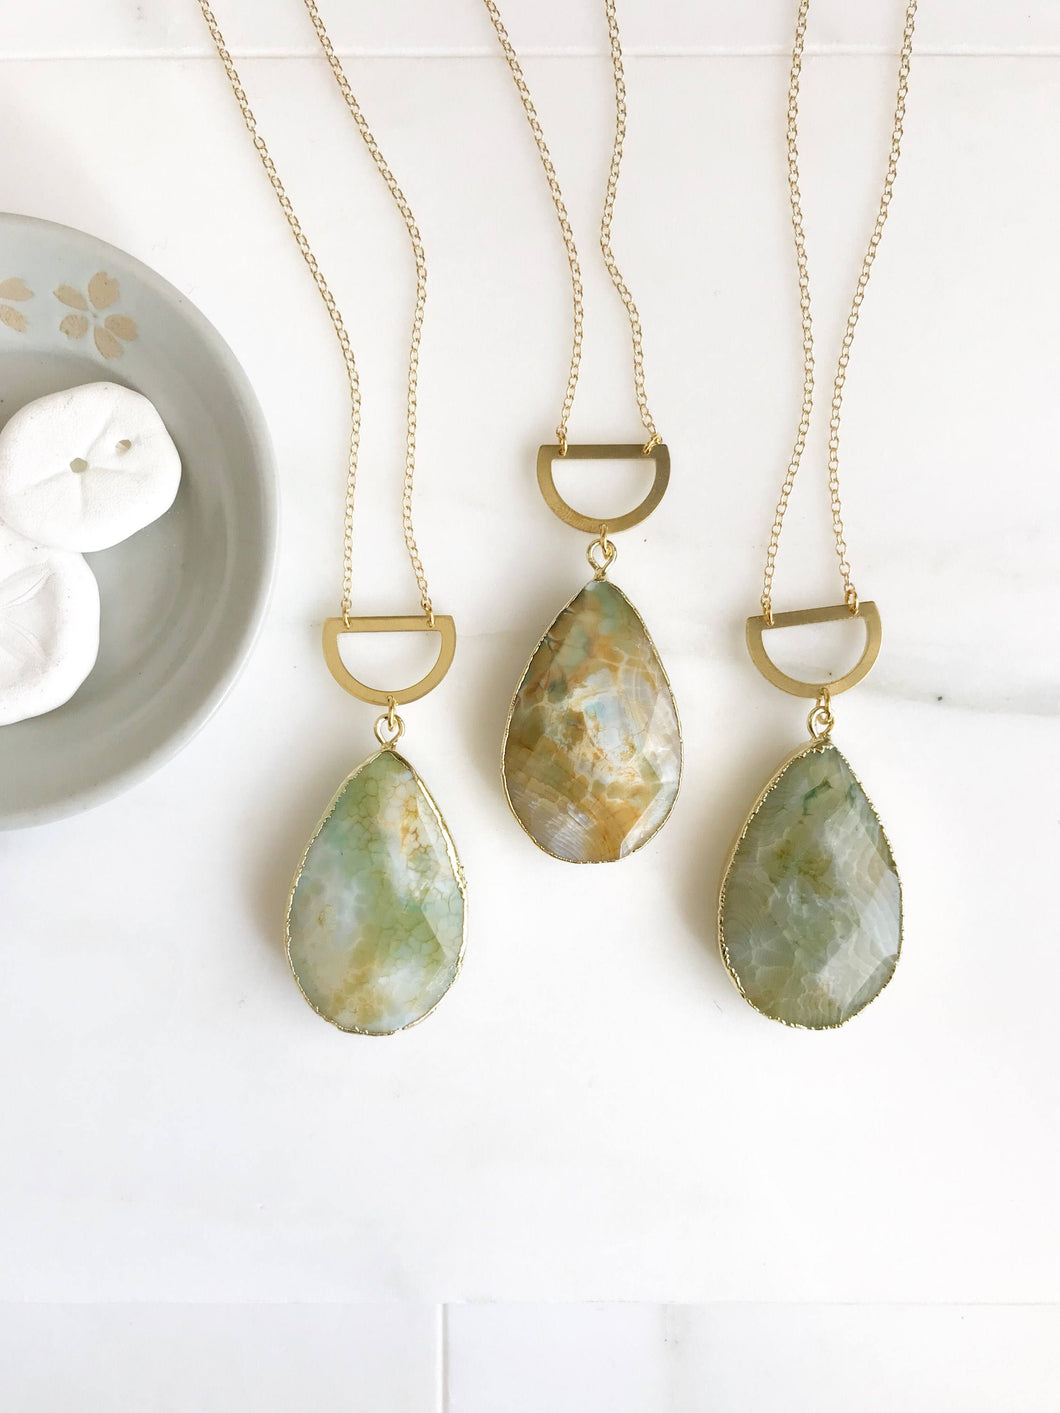 Long Stone Necklace. Long Boho Necklace. Long Gold Green Necklace. Ocean Jasper Stone Necklace. Unique Jewelry. Christmas Gift. Pendant.